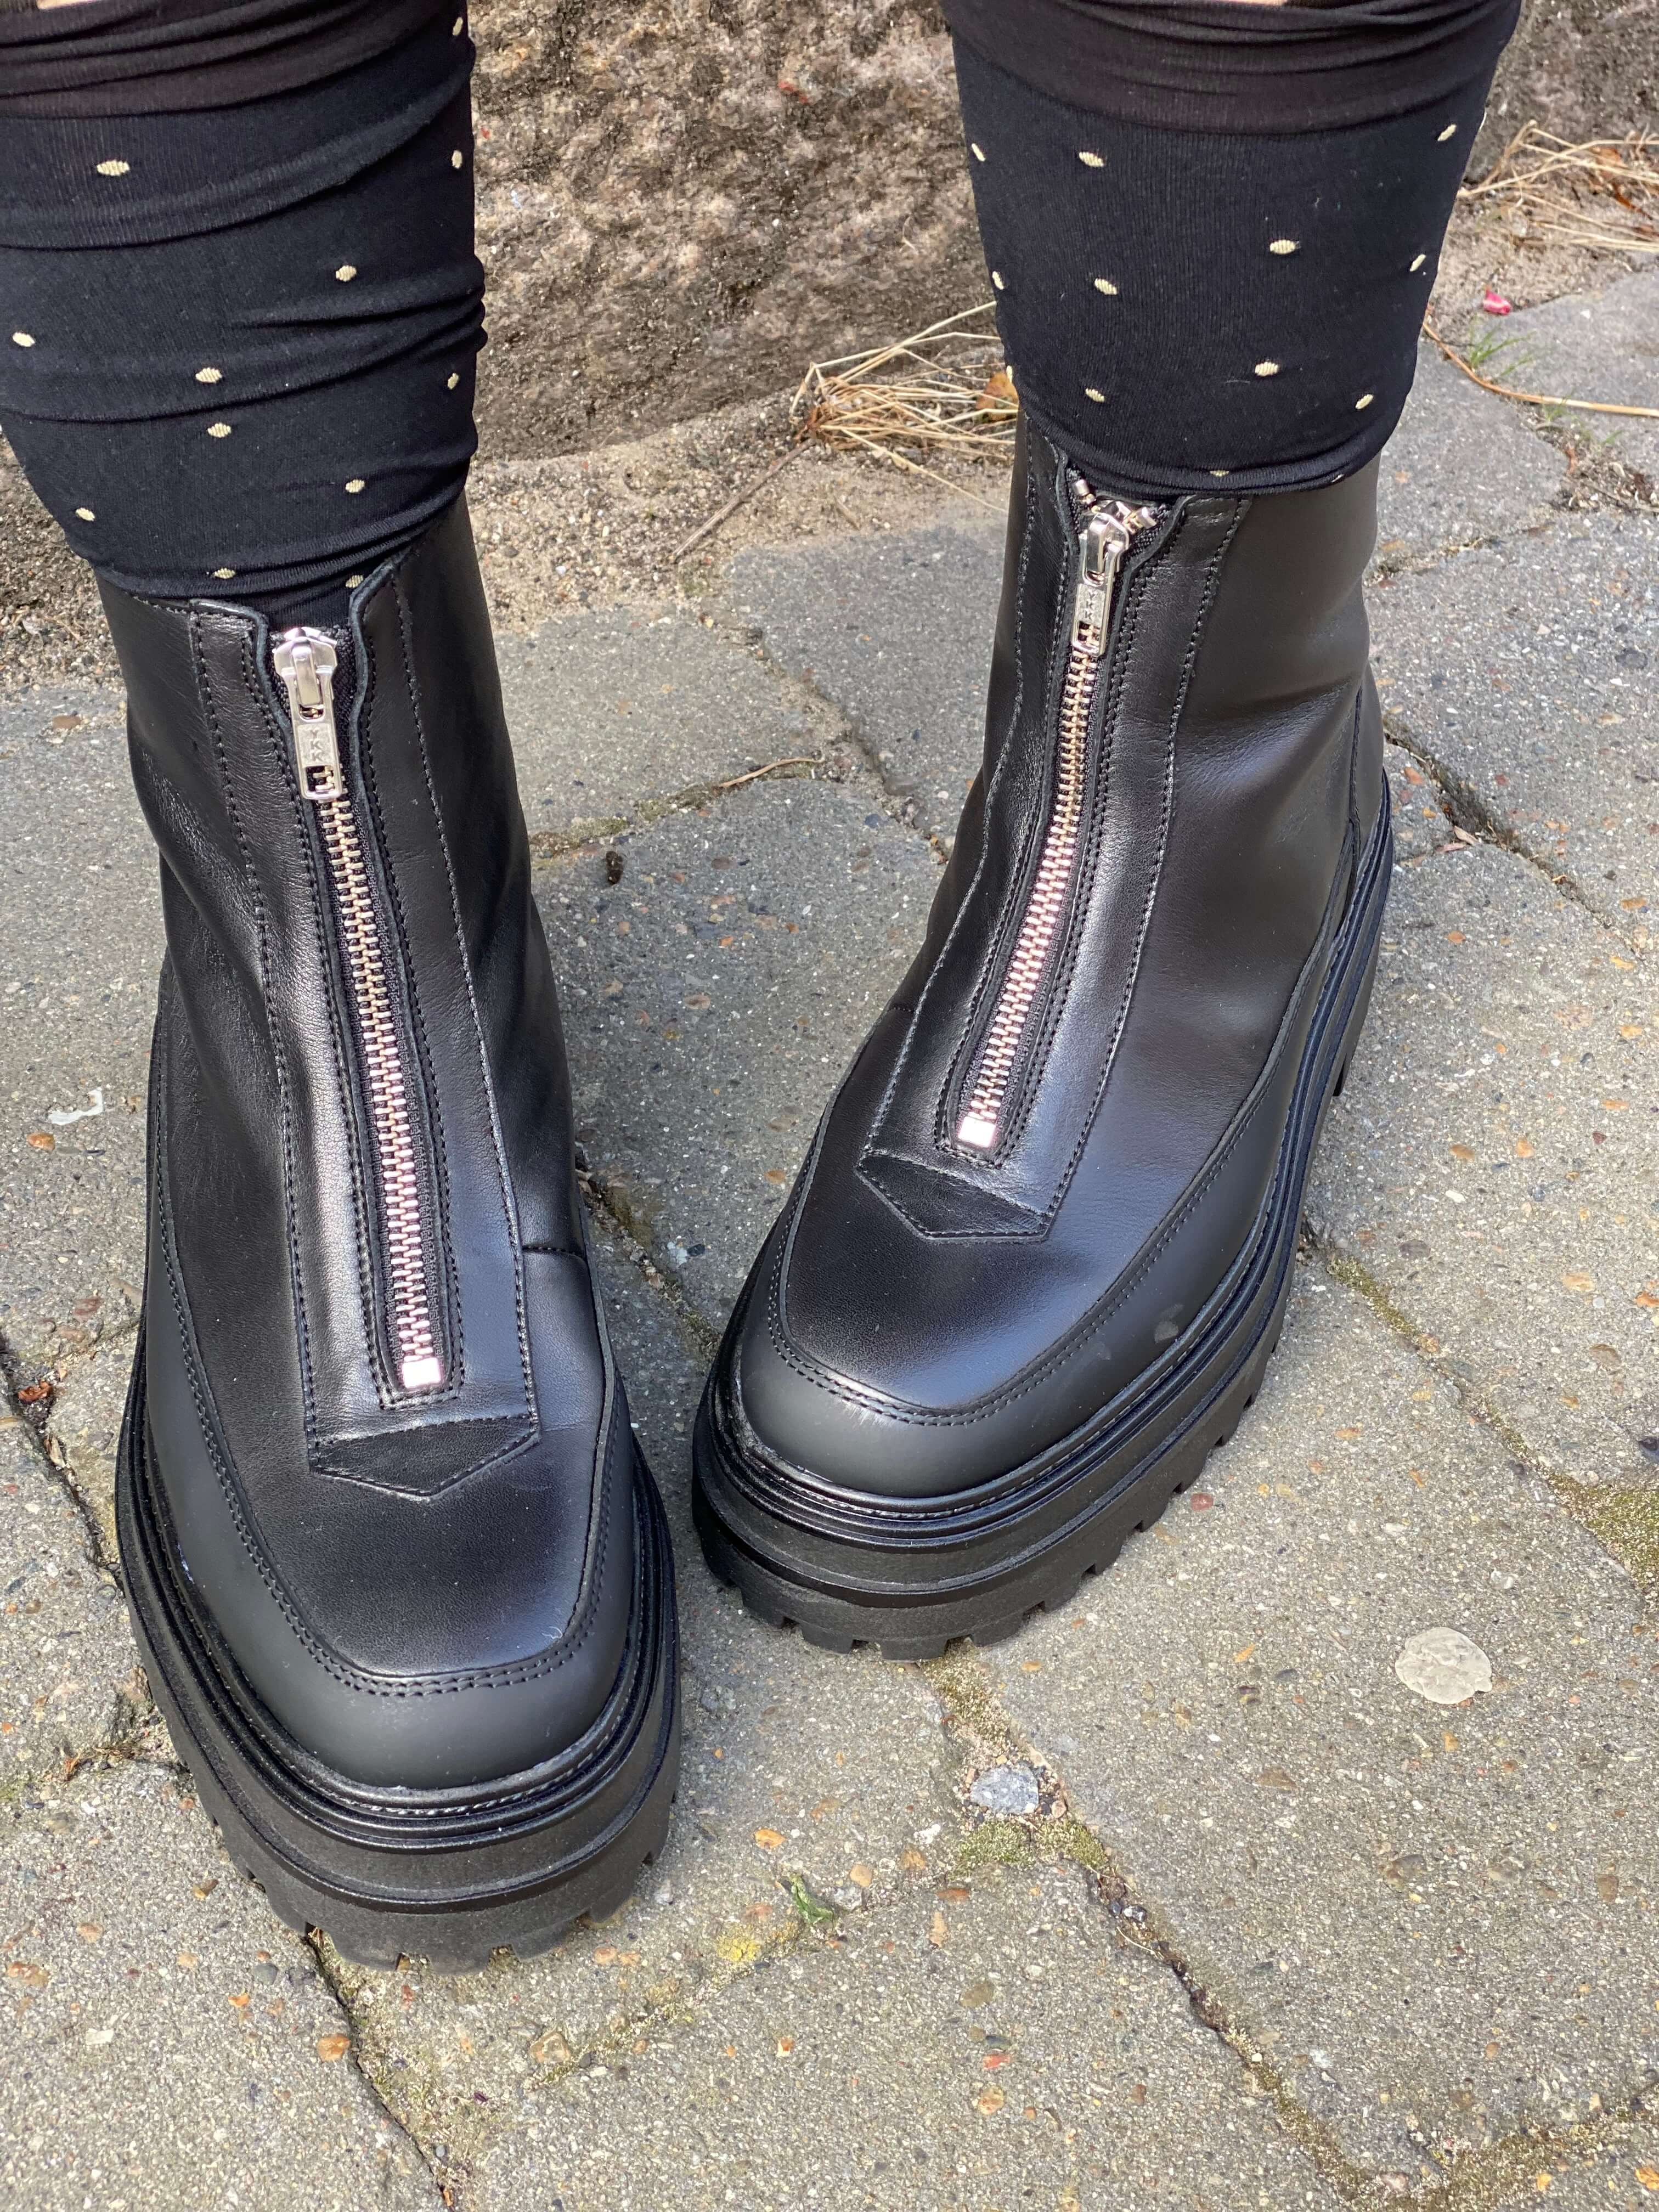 Theese boots are made for walking